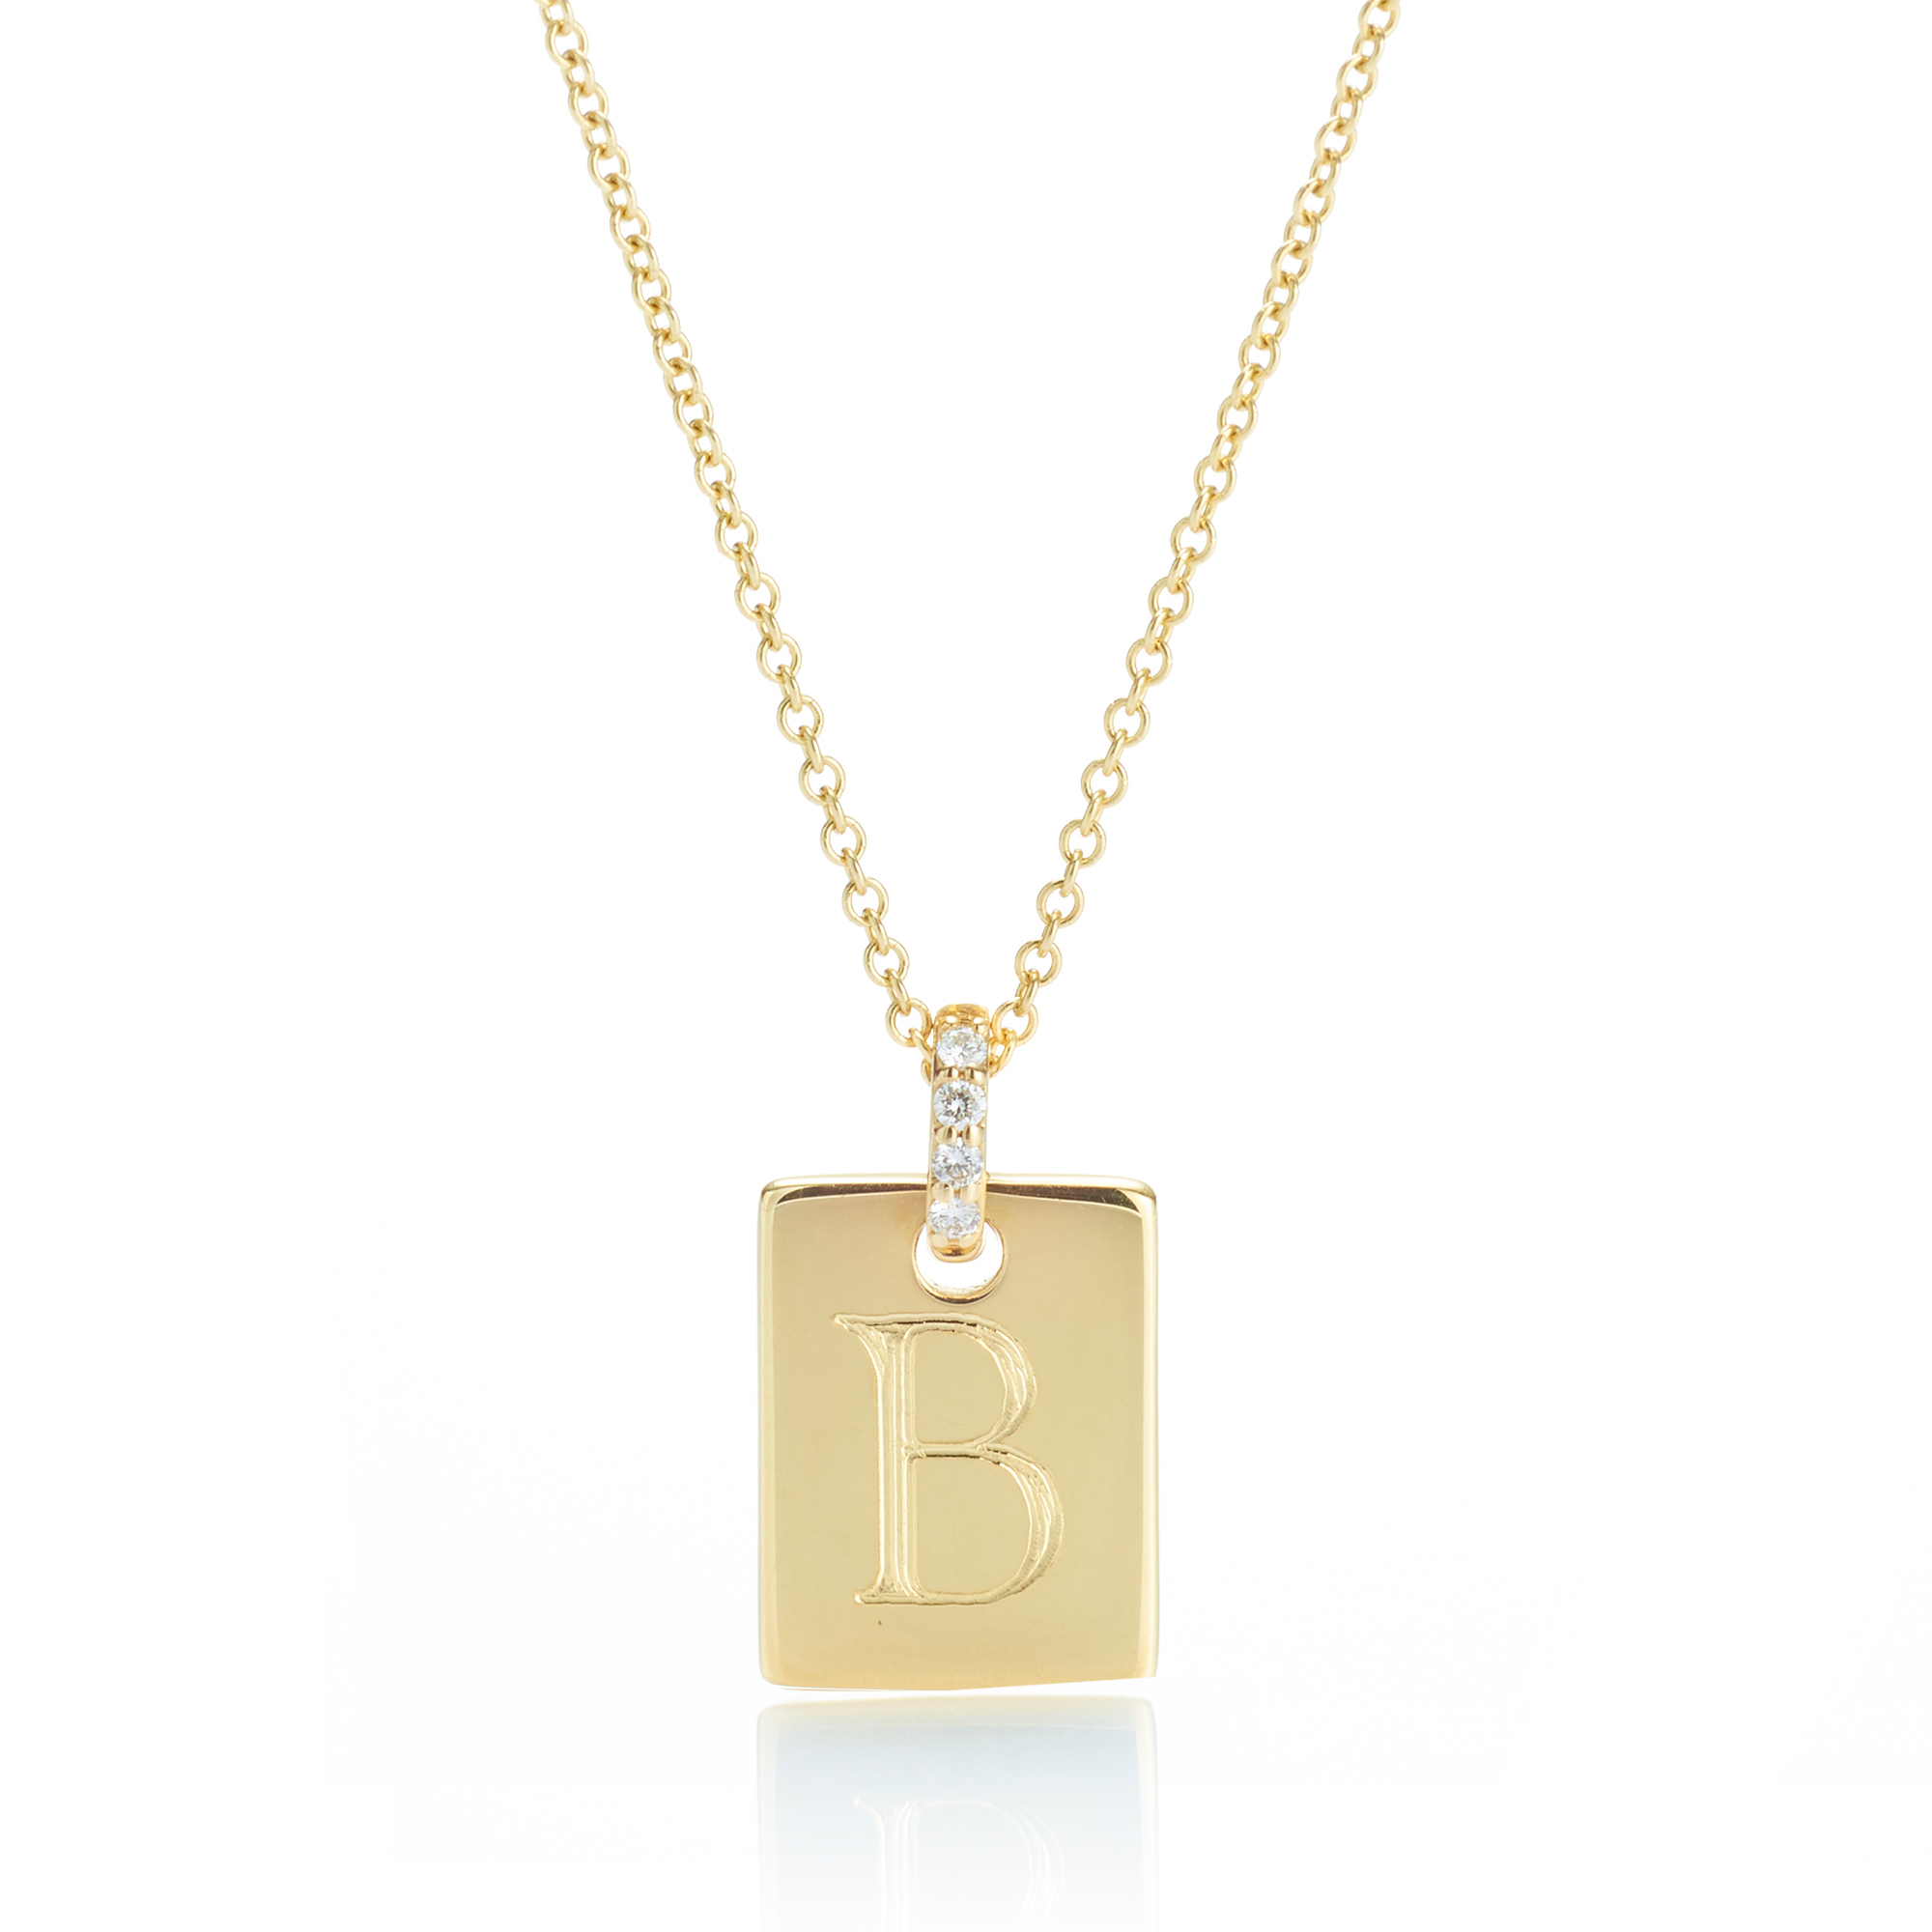 Gump's Petite Gold Rectangle Tag Pendant Necklace